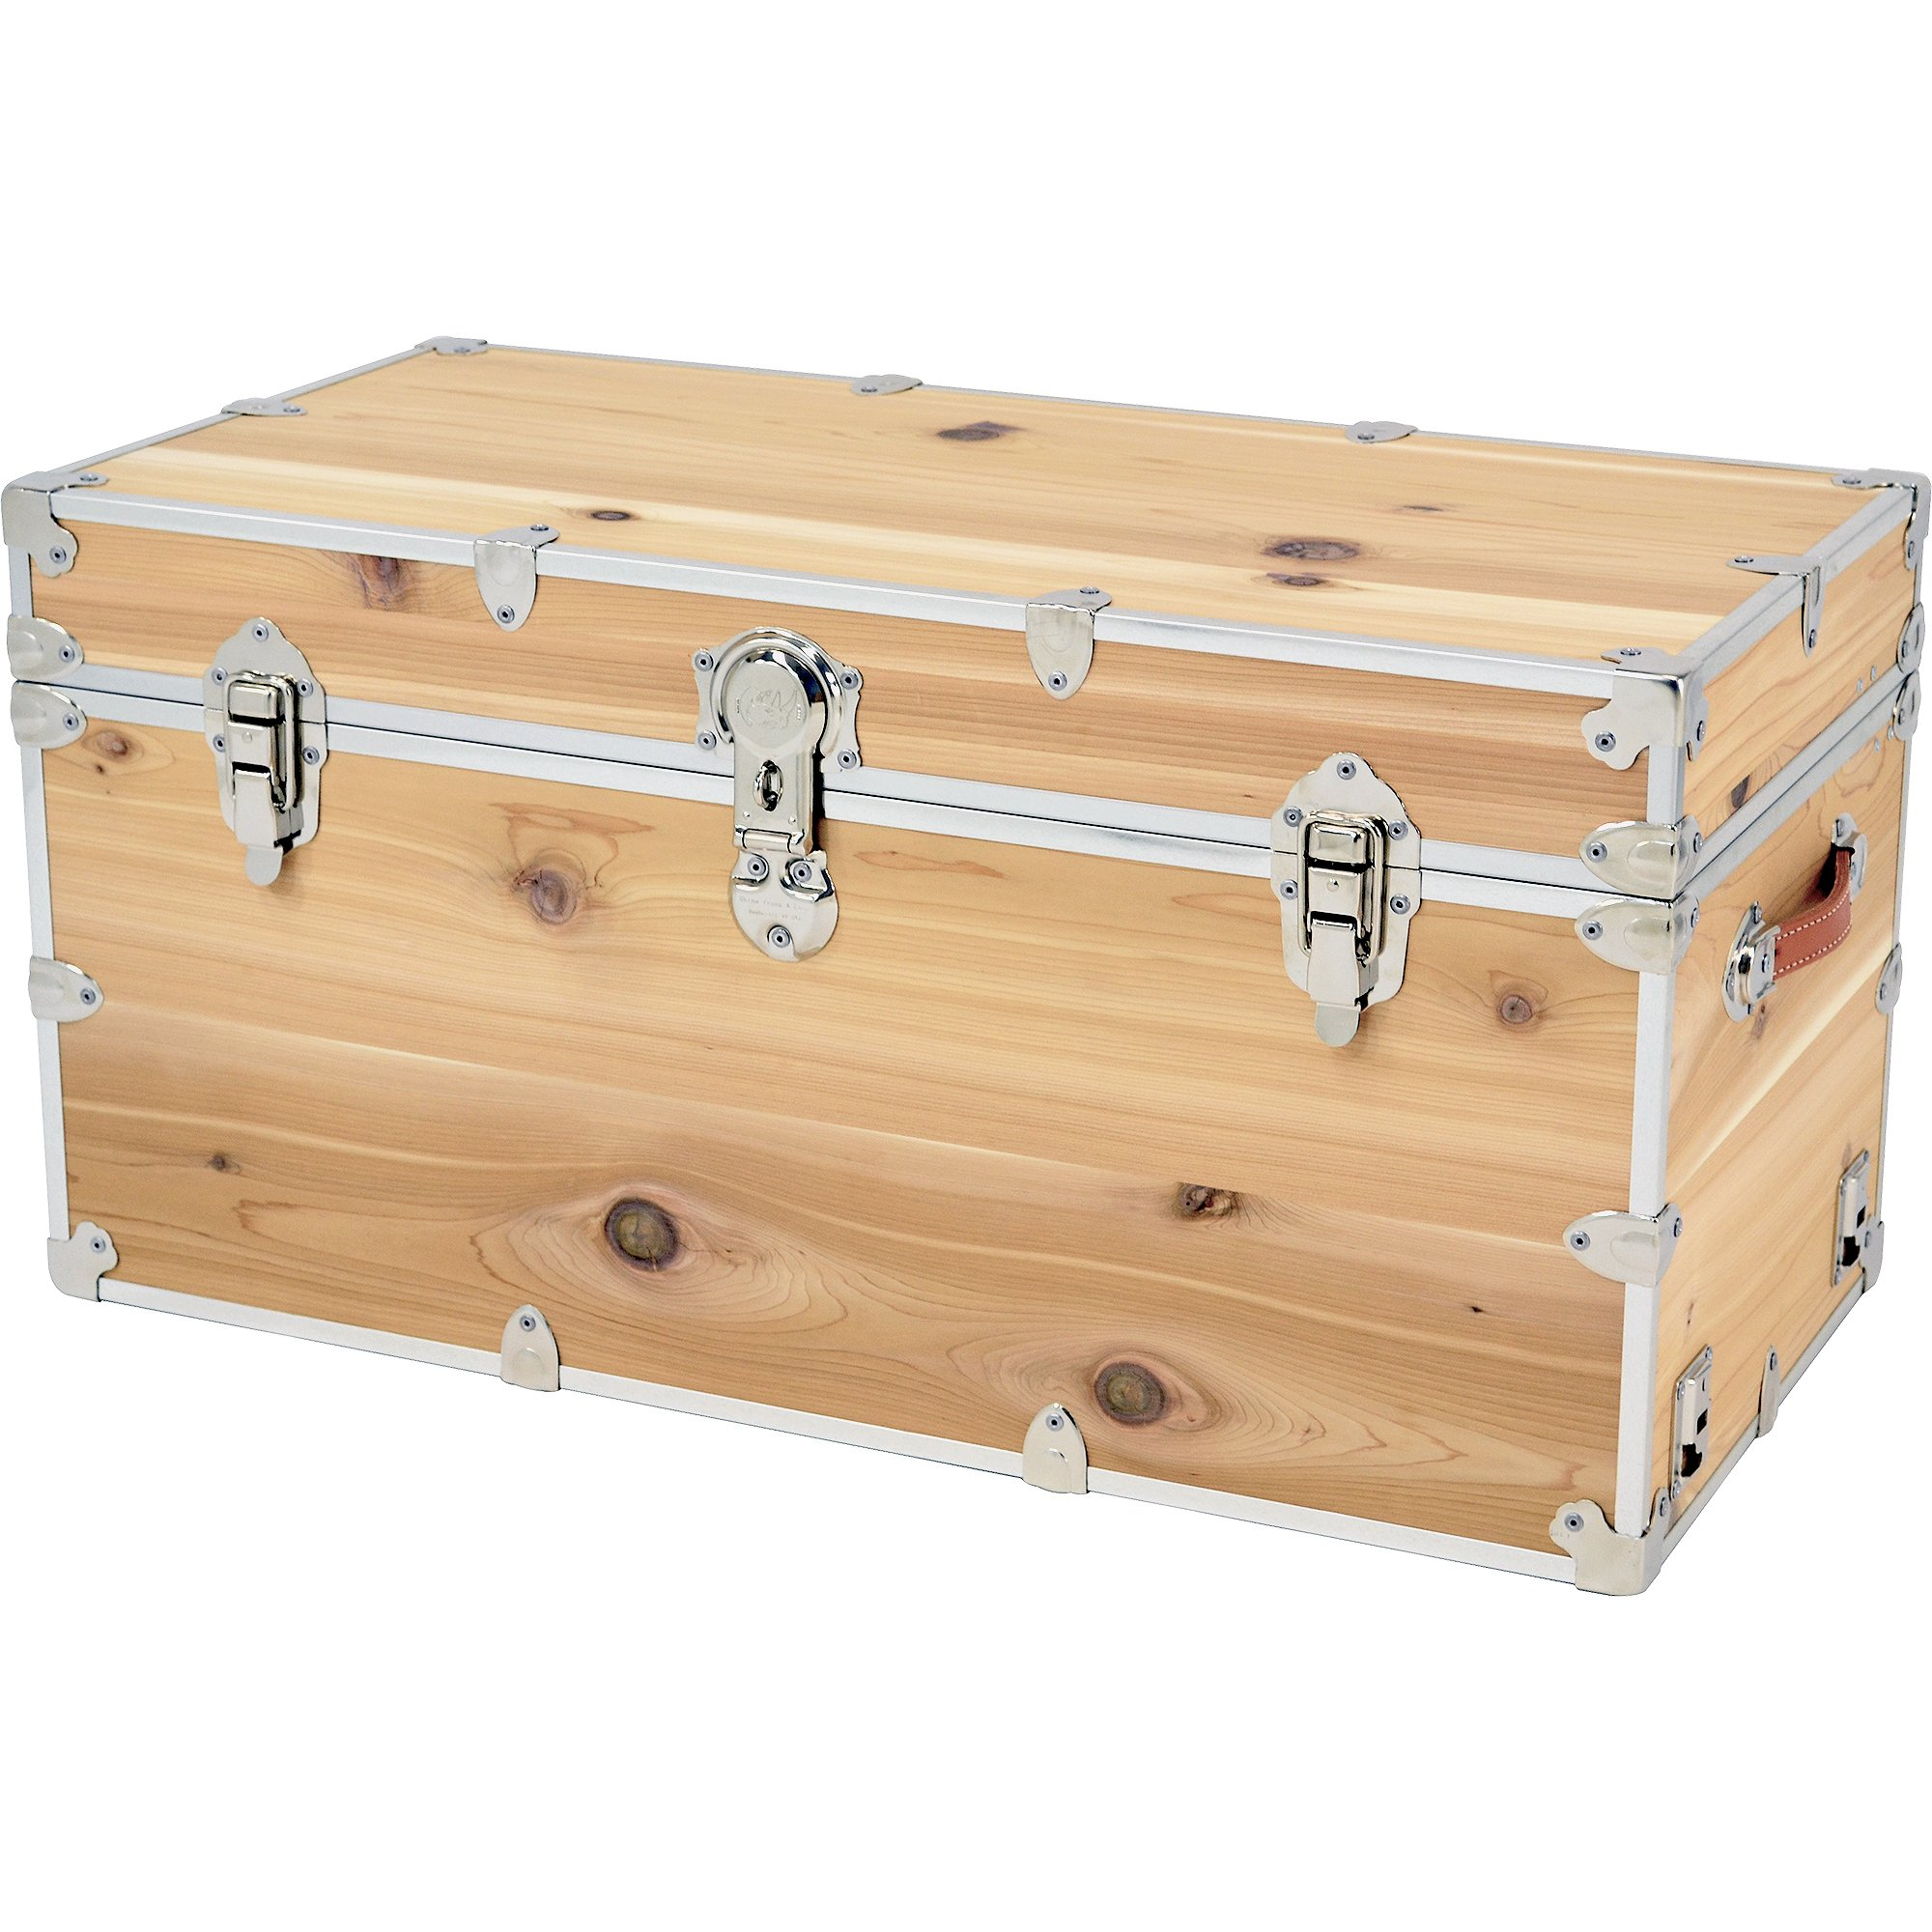 Rhino Trunk and Case Knotty Cedar Trunk, XX-Large by Rhino Trunk and Case